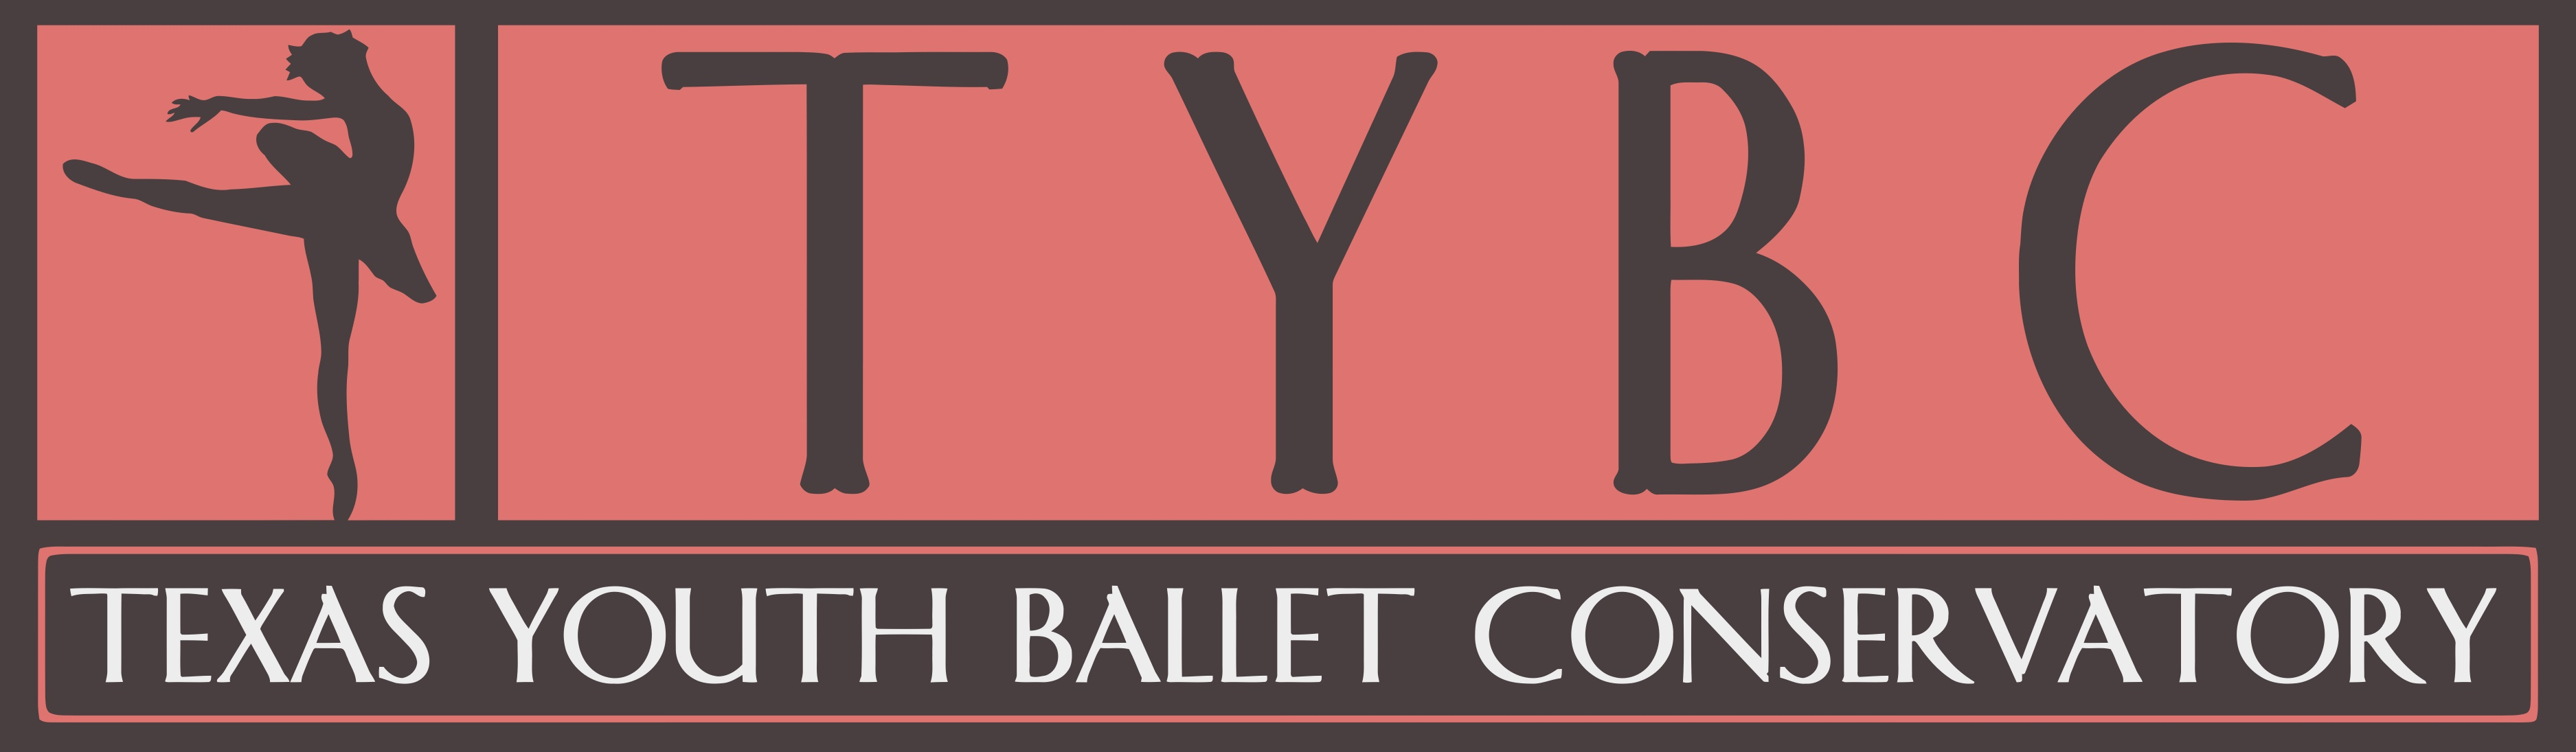 Texas Youth Ballet Conservatory Photo